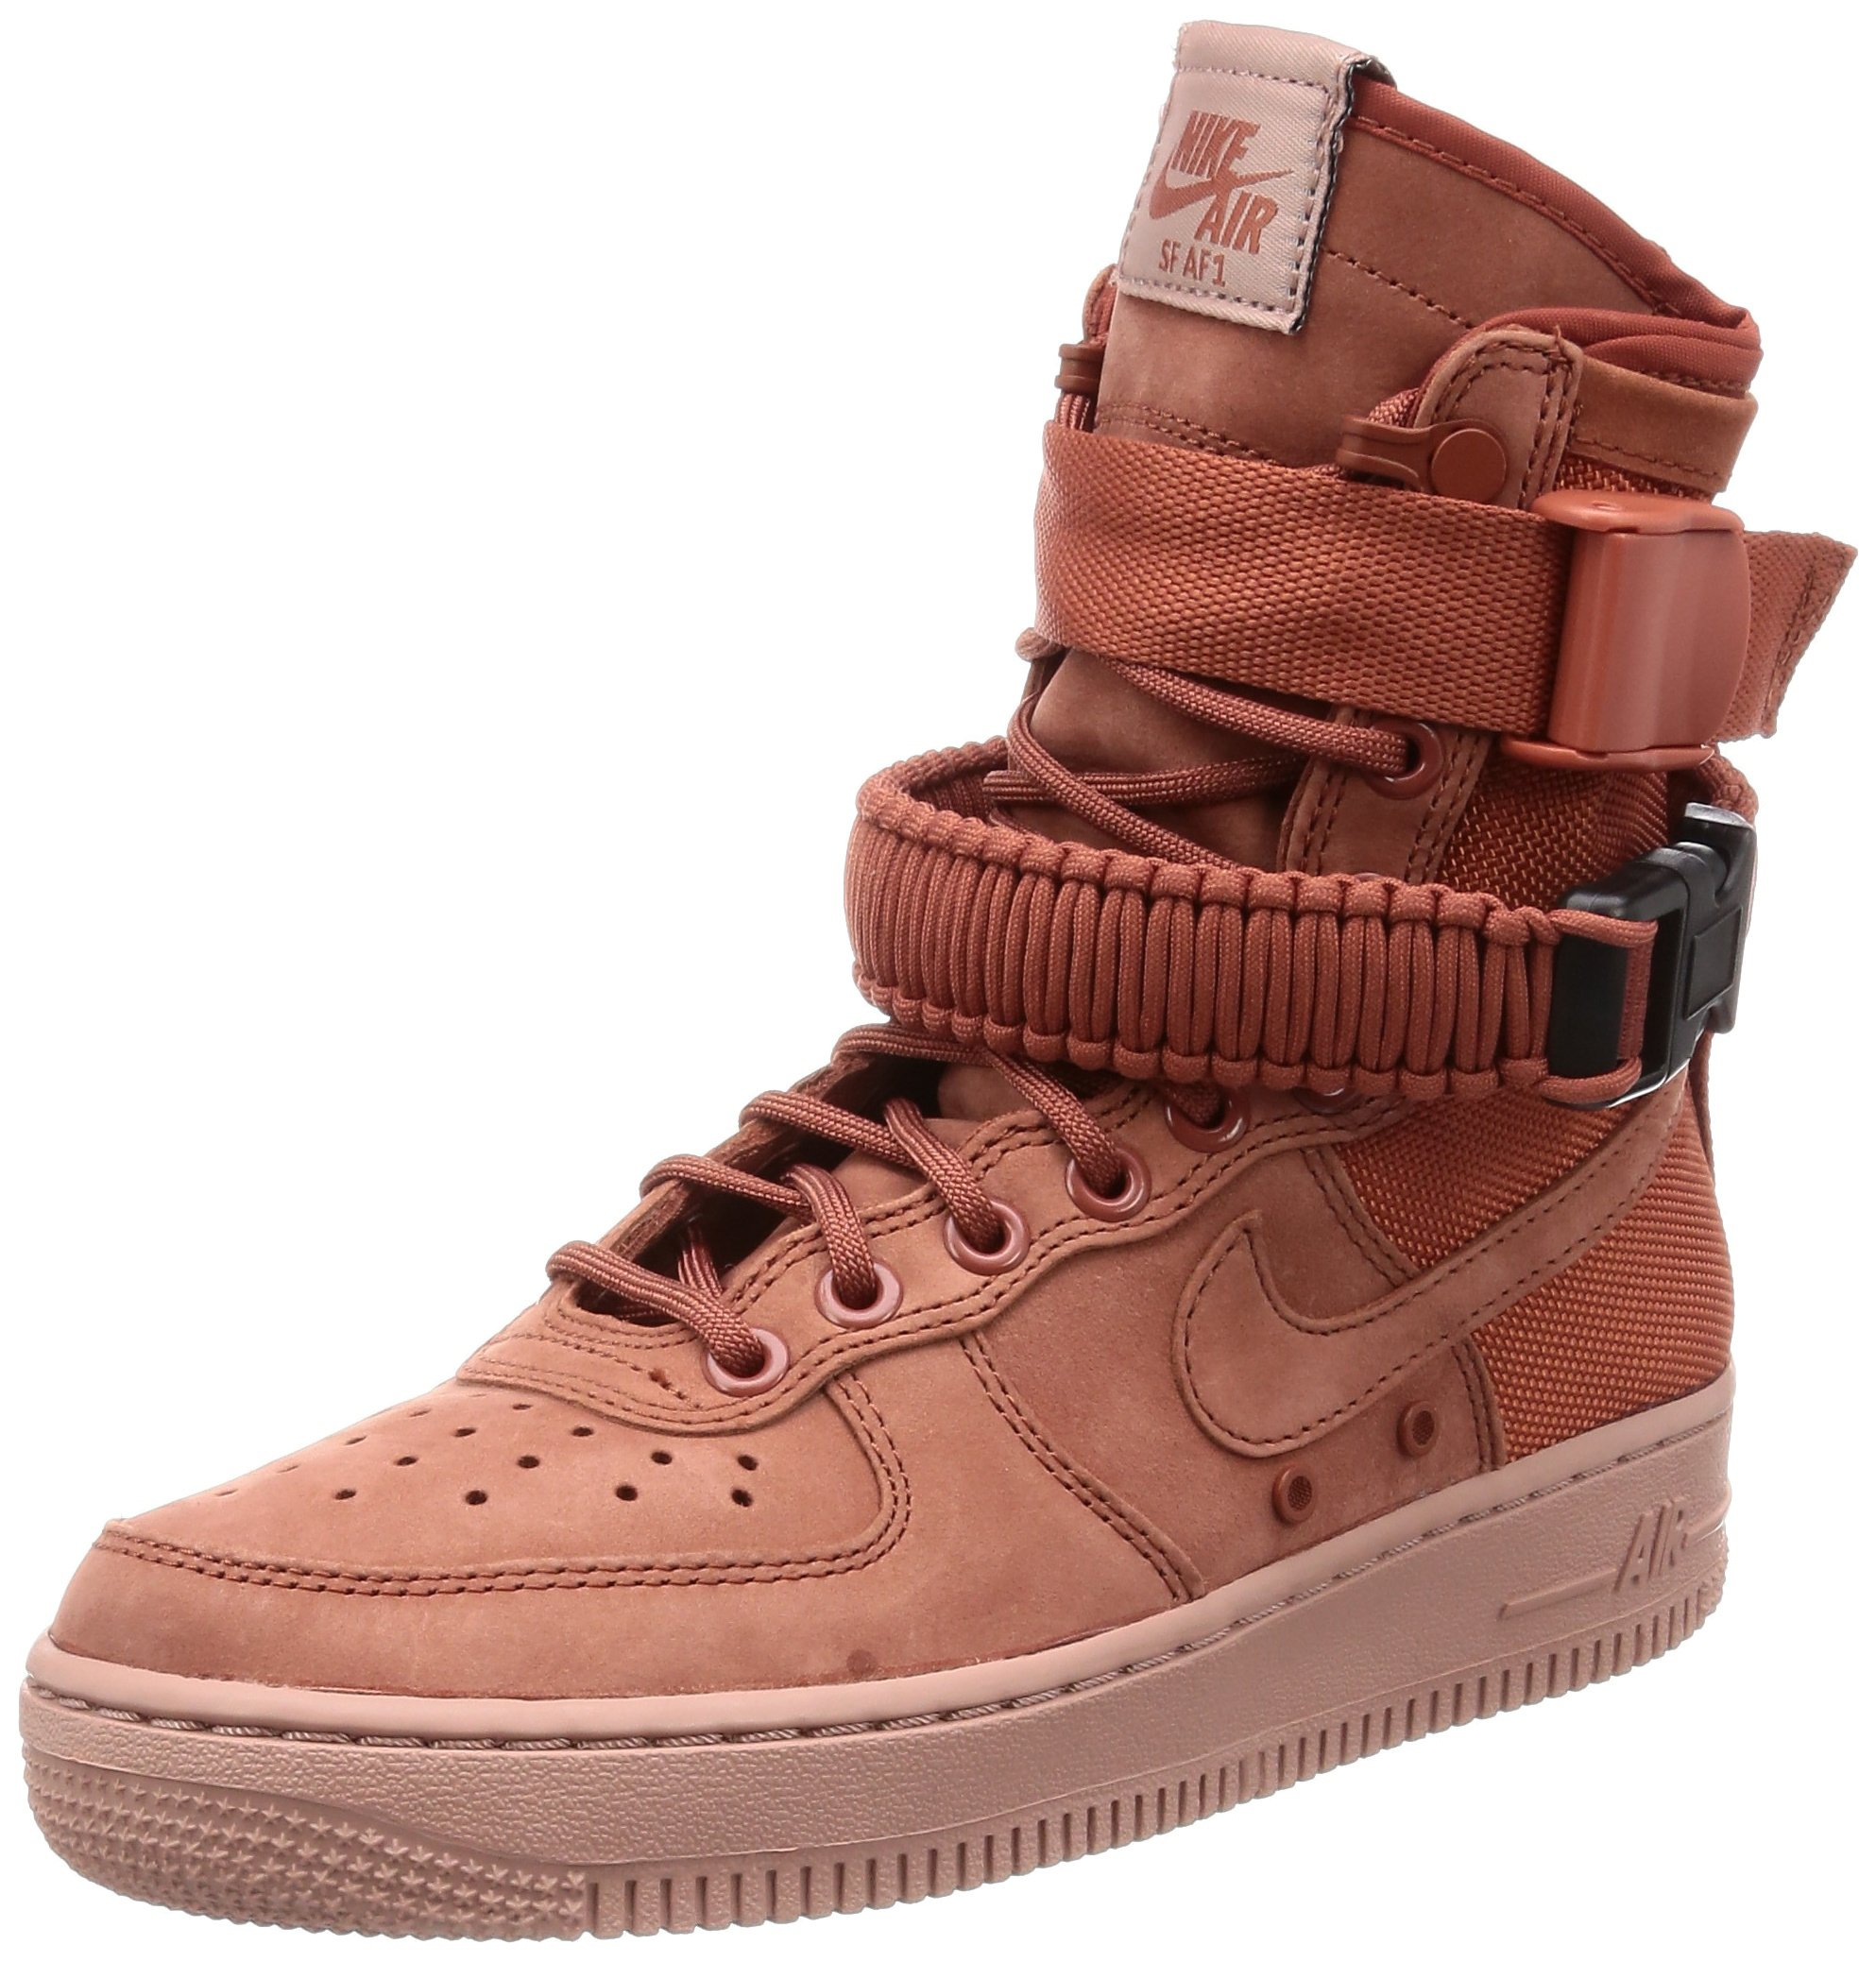 f41c1b99423 Galleon - Nike Women s Air Force 1 Dusty Peach 857872-202 (Size  6.5)